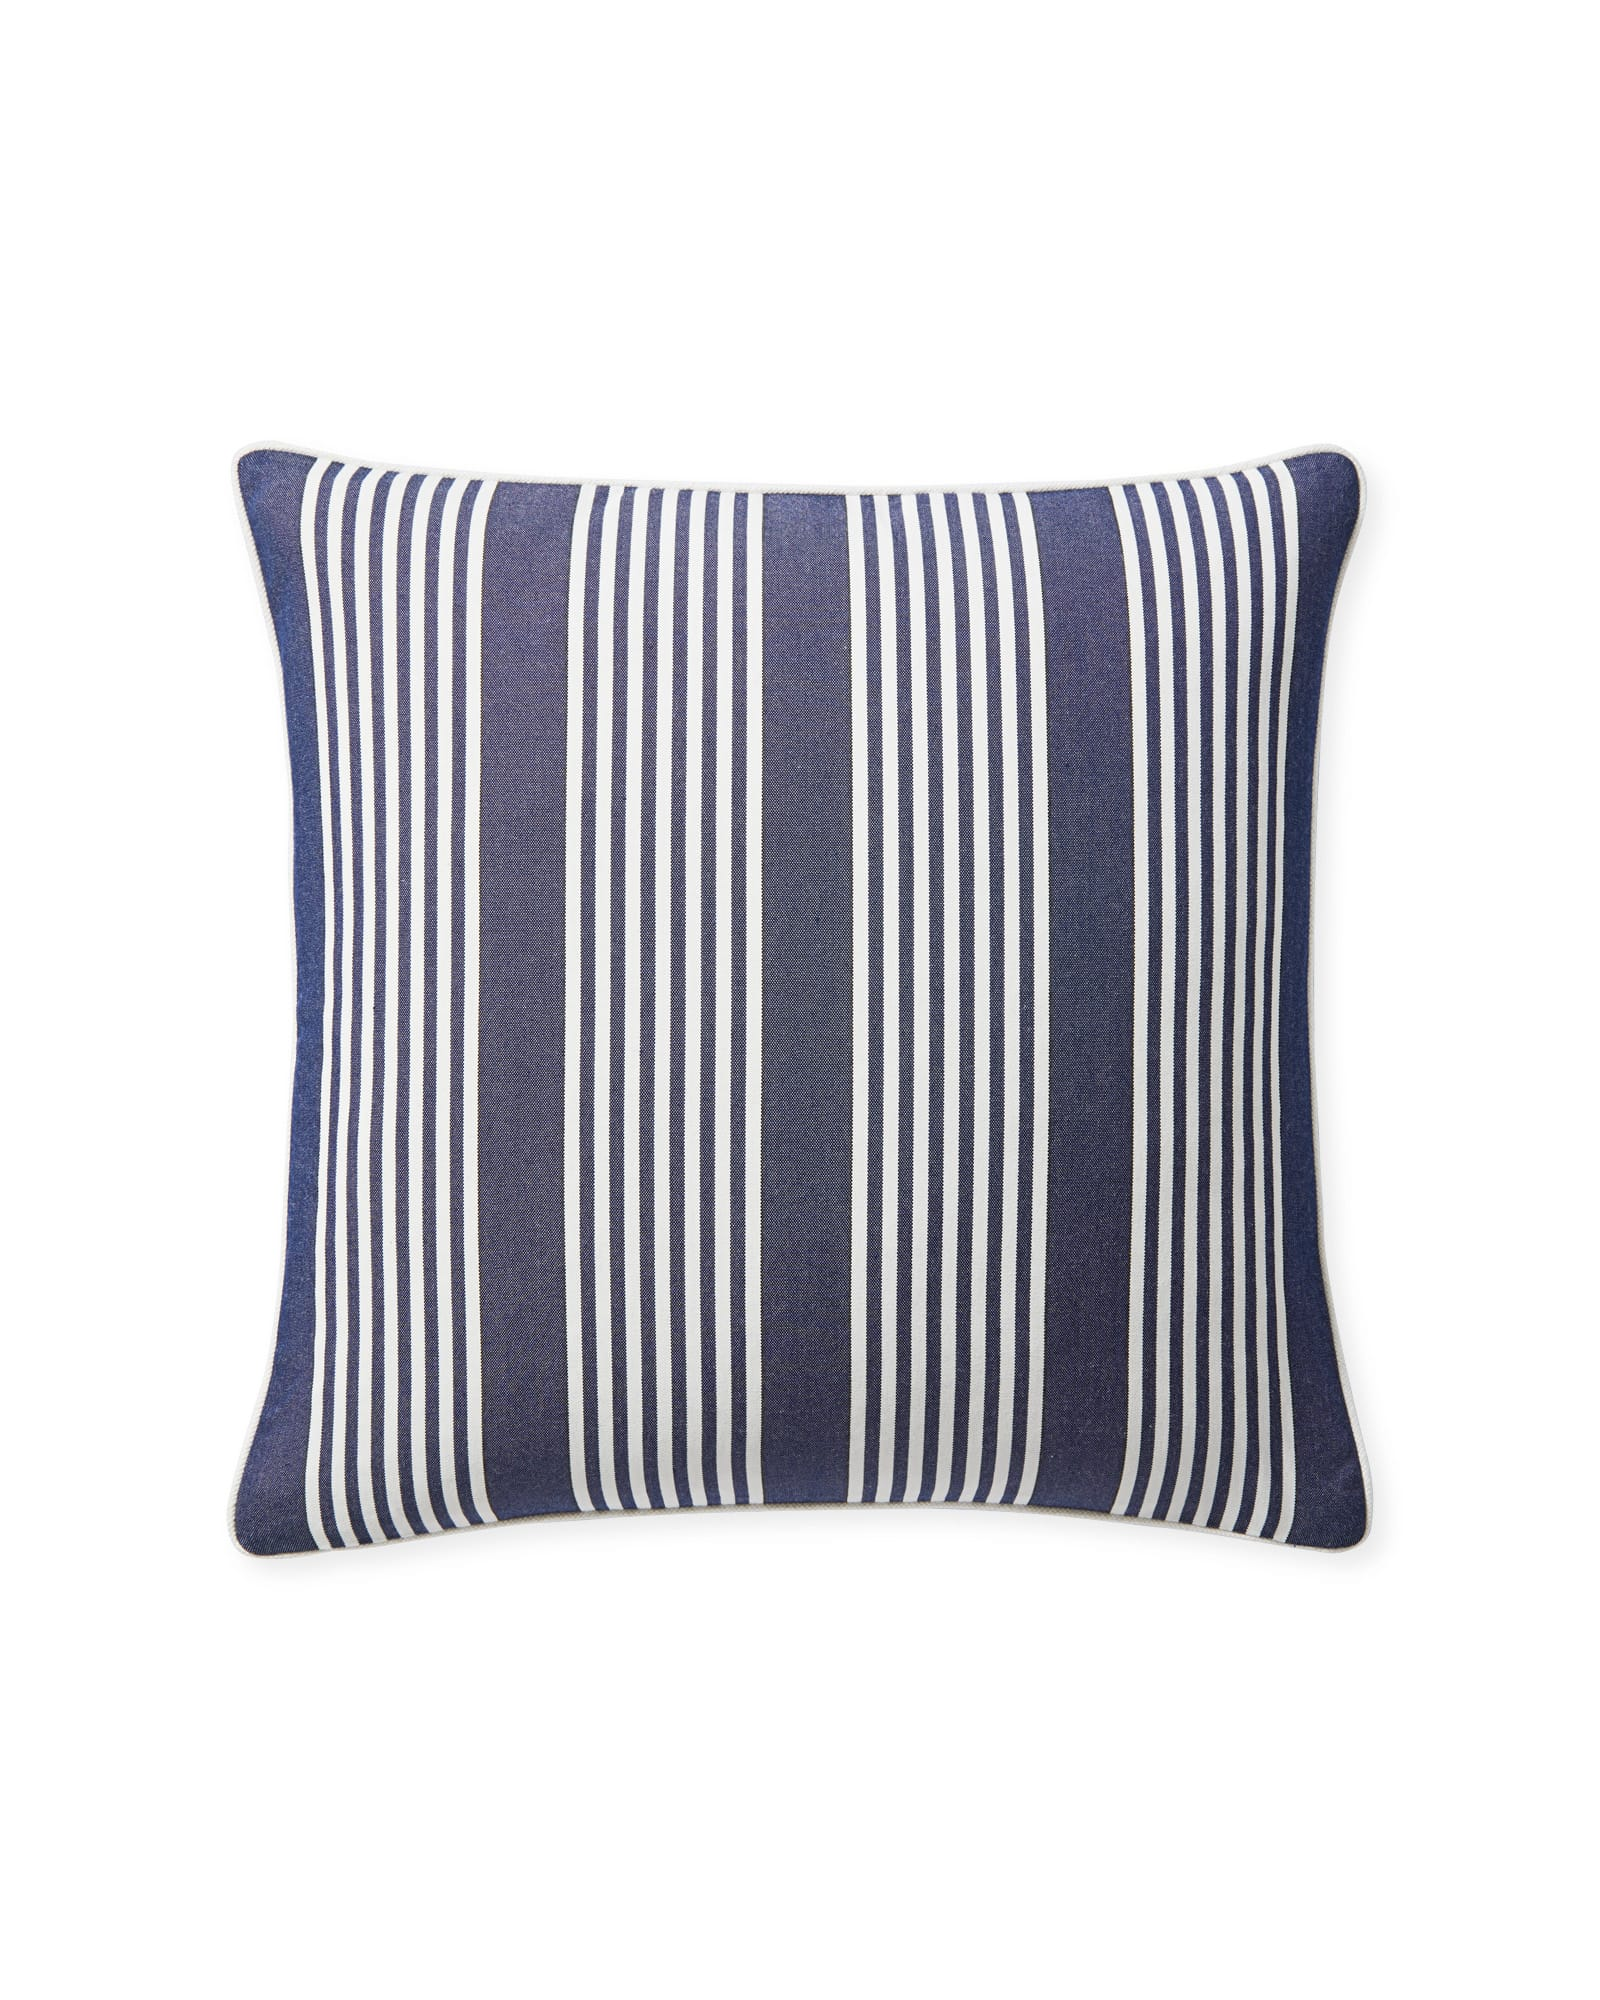 Perennials Cabana Stripe Pillow Cover